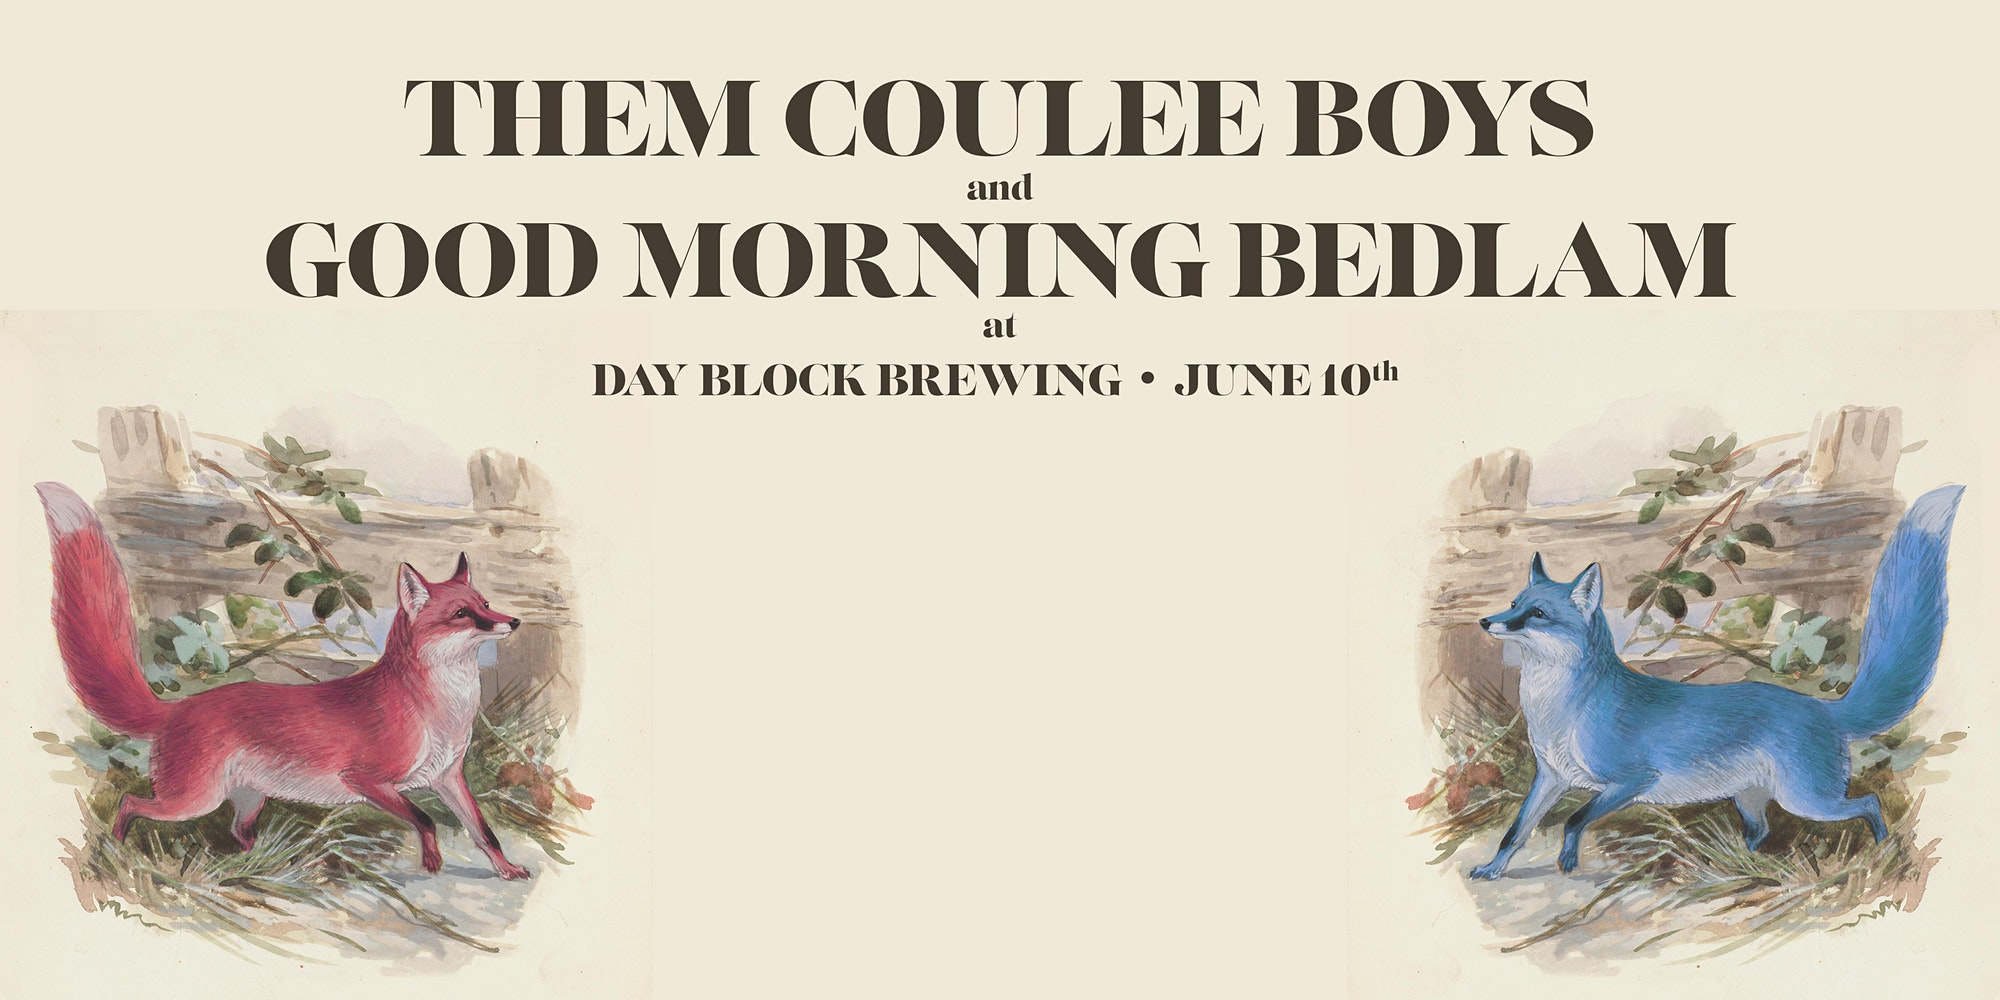 Them Coulee Boys and Good Morning Bedlam